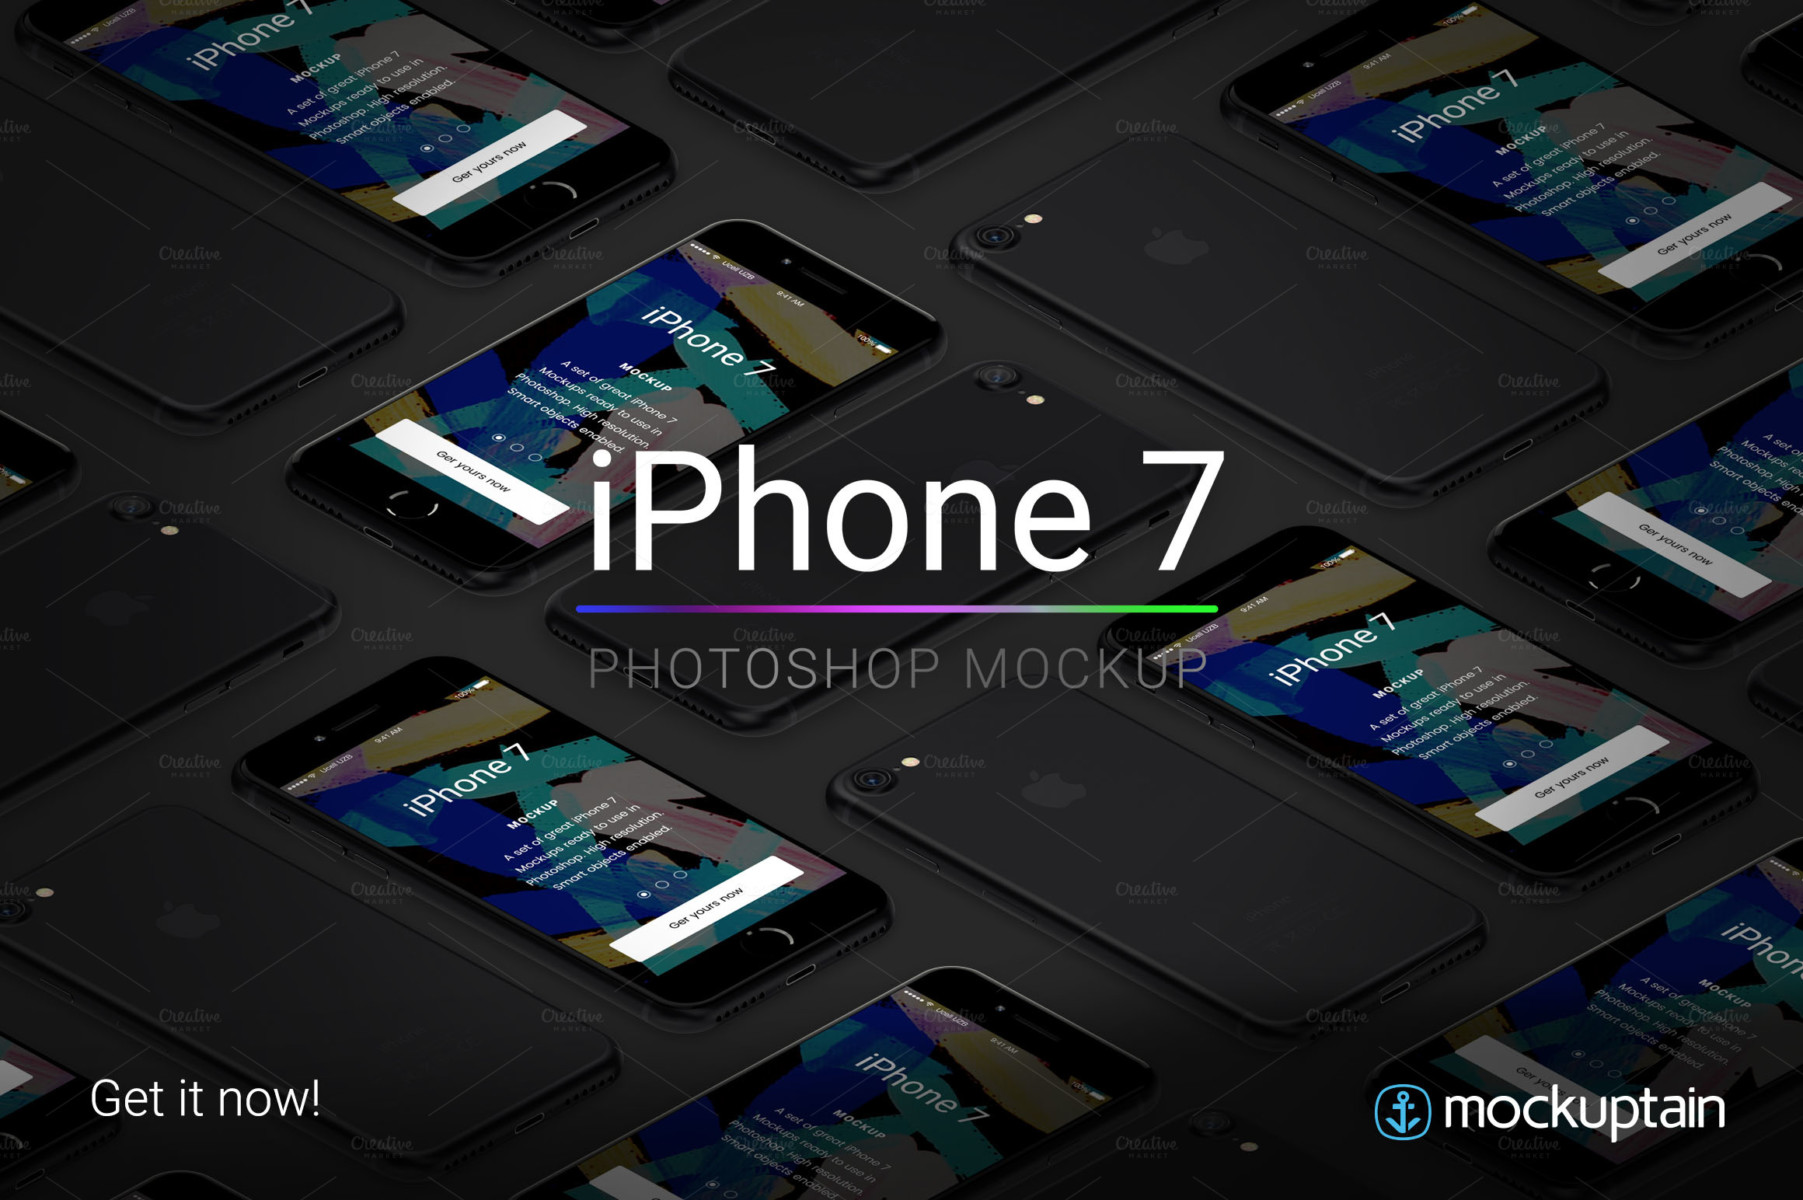 iphone-7-mockup-mockuptain-black